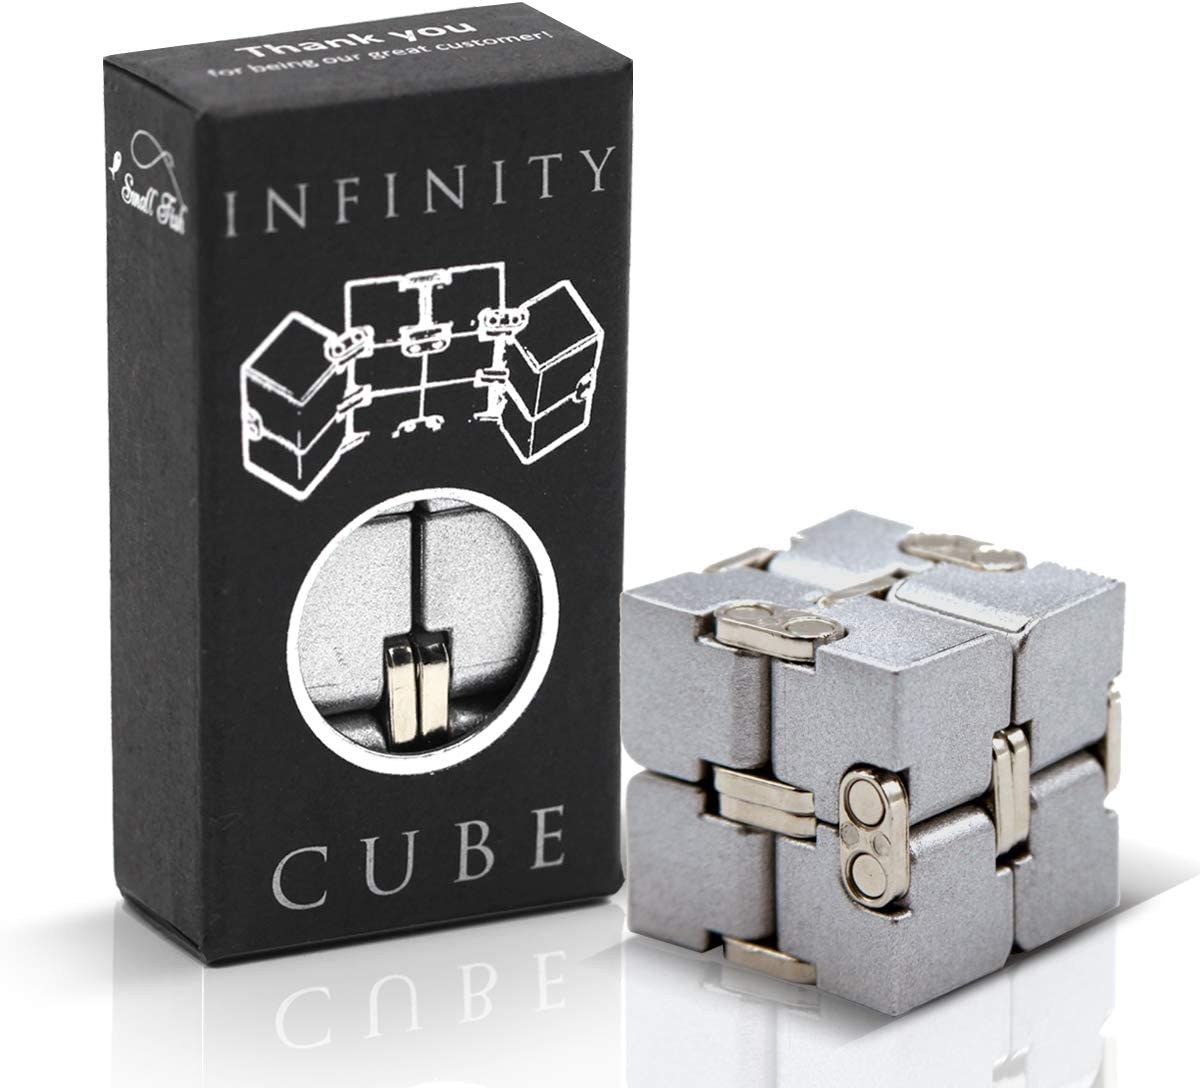 SMALL FISH Fidget Toys: Fidget Cube Infinity Toy Gadget for Kids, Teens, and Adults, Sensory Toy for Anti-Anxiety and Stress Relief, Ideal School Gift & Cool Office Decor for Men in Metal Aluminum